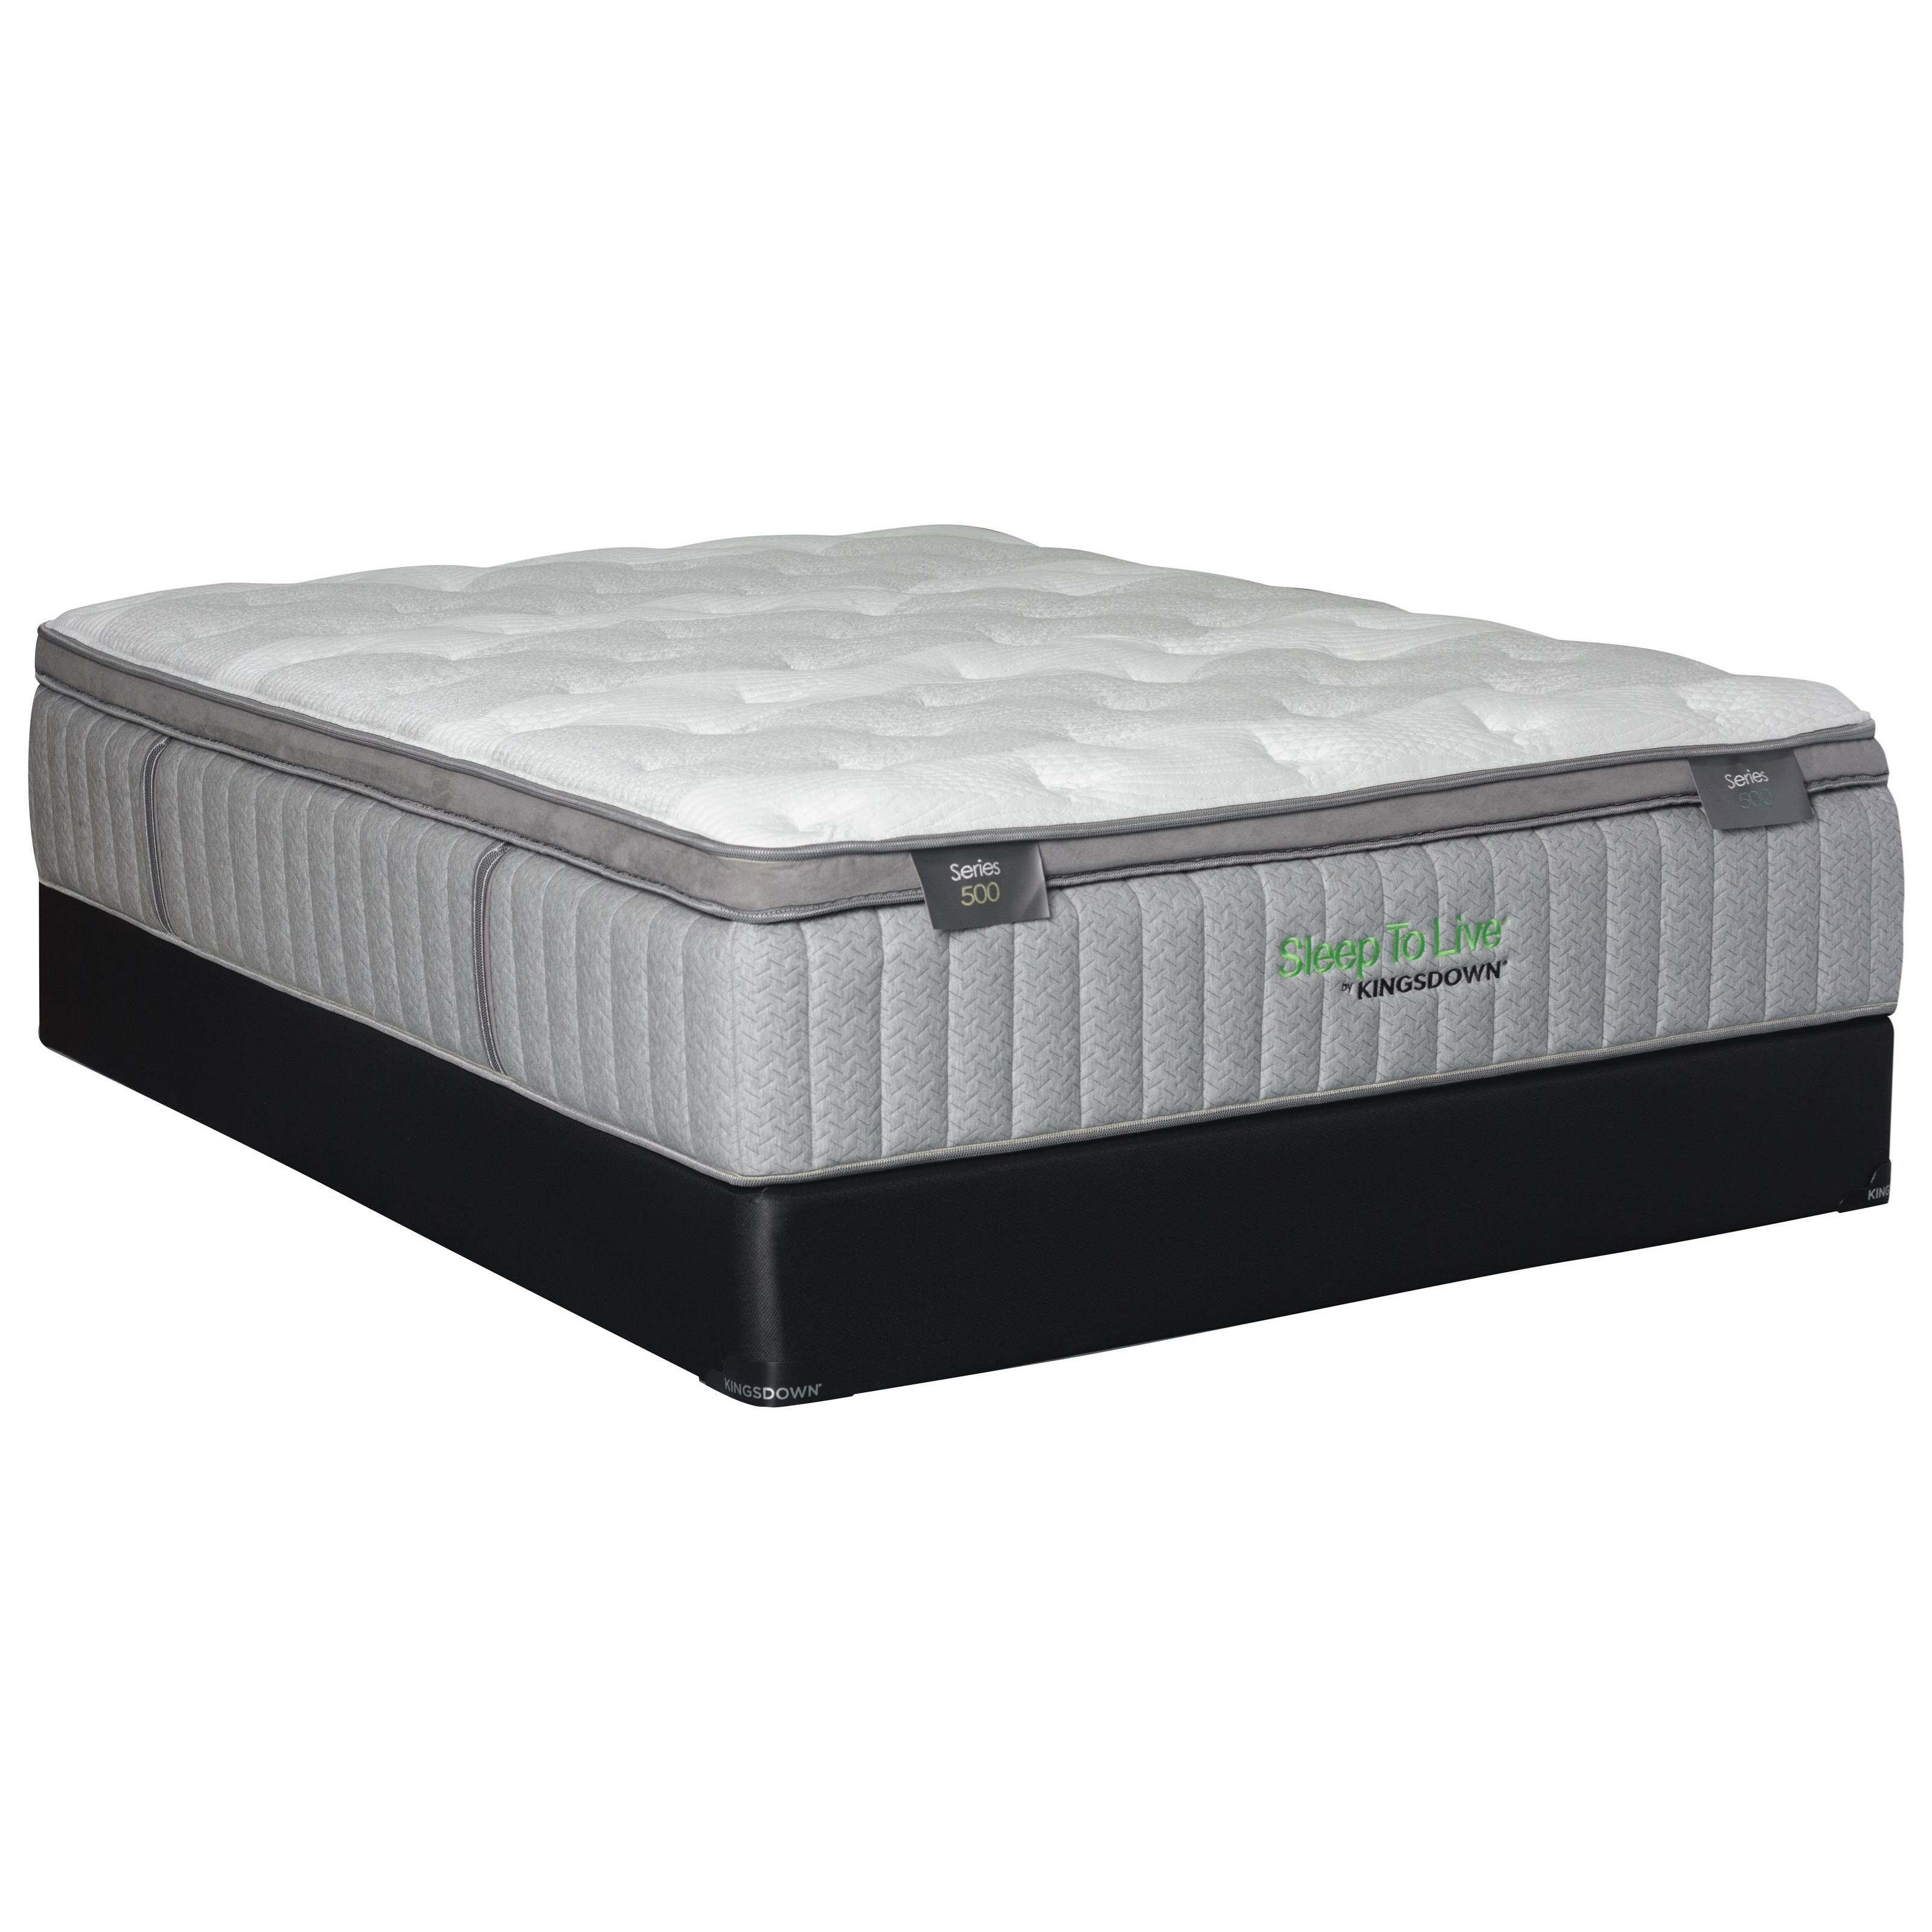 Back Smart Series 500 Twin Back Smart Series 500 LP Set by Sleep to Live at Baer's Furniture